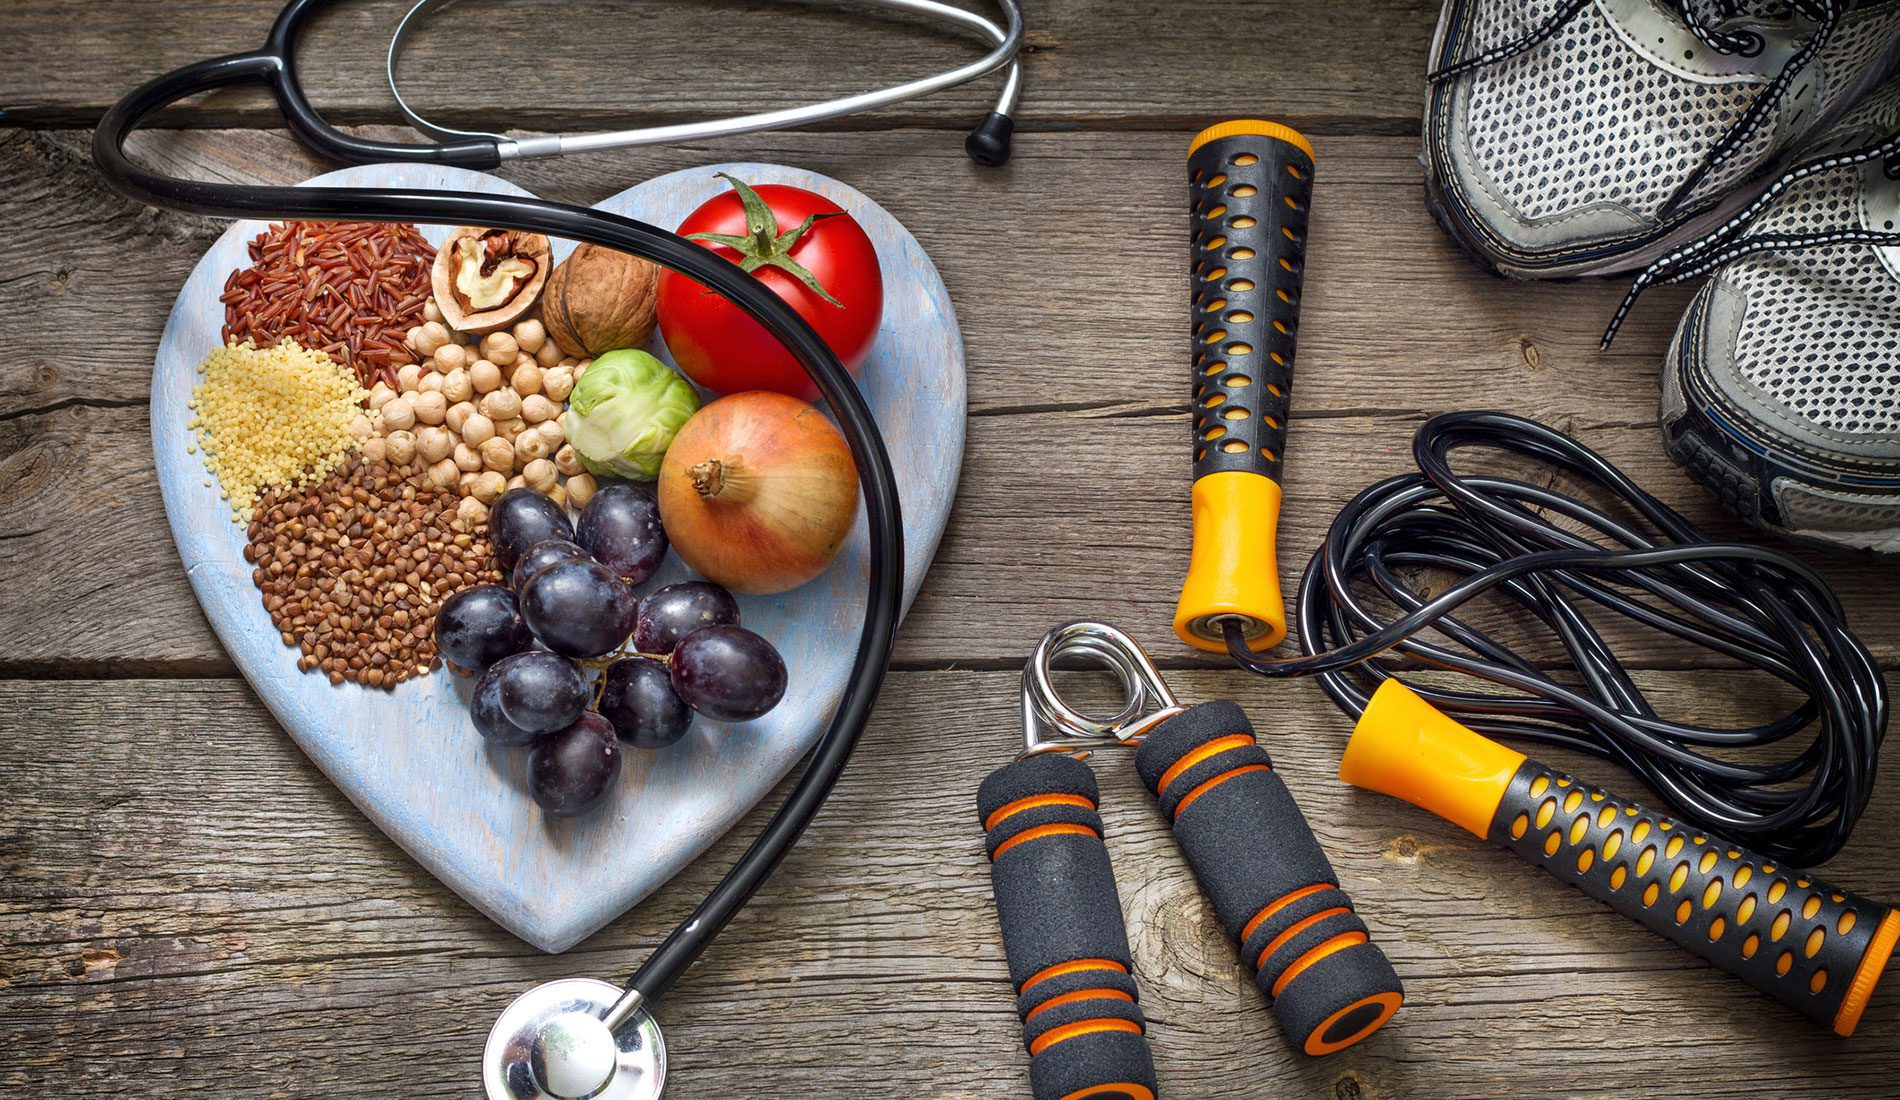 NUTRITION, EXERCISE AND SPORTS